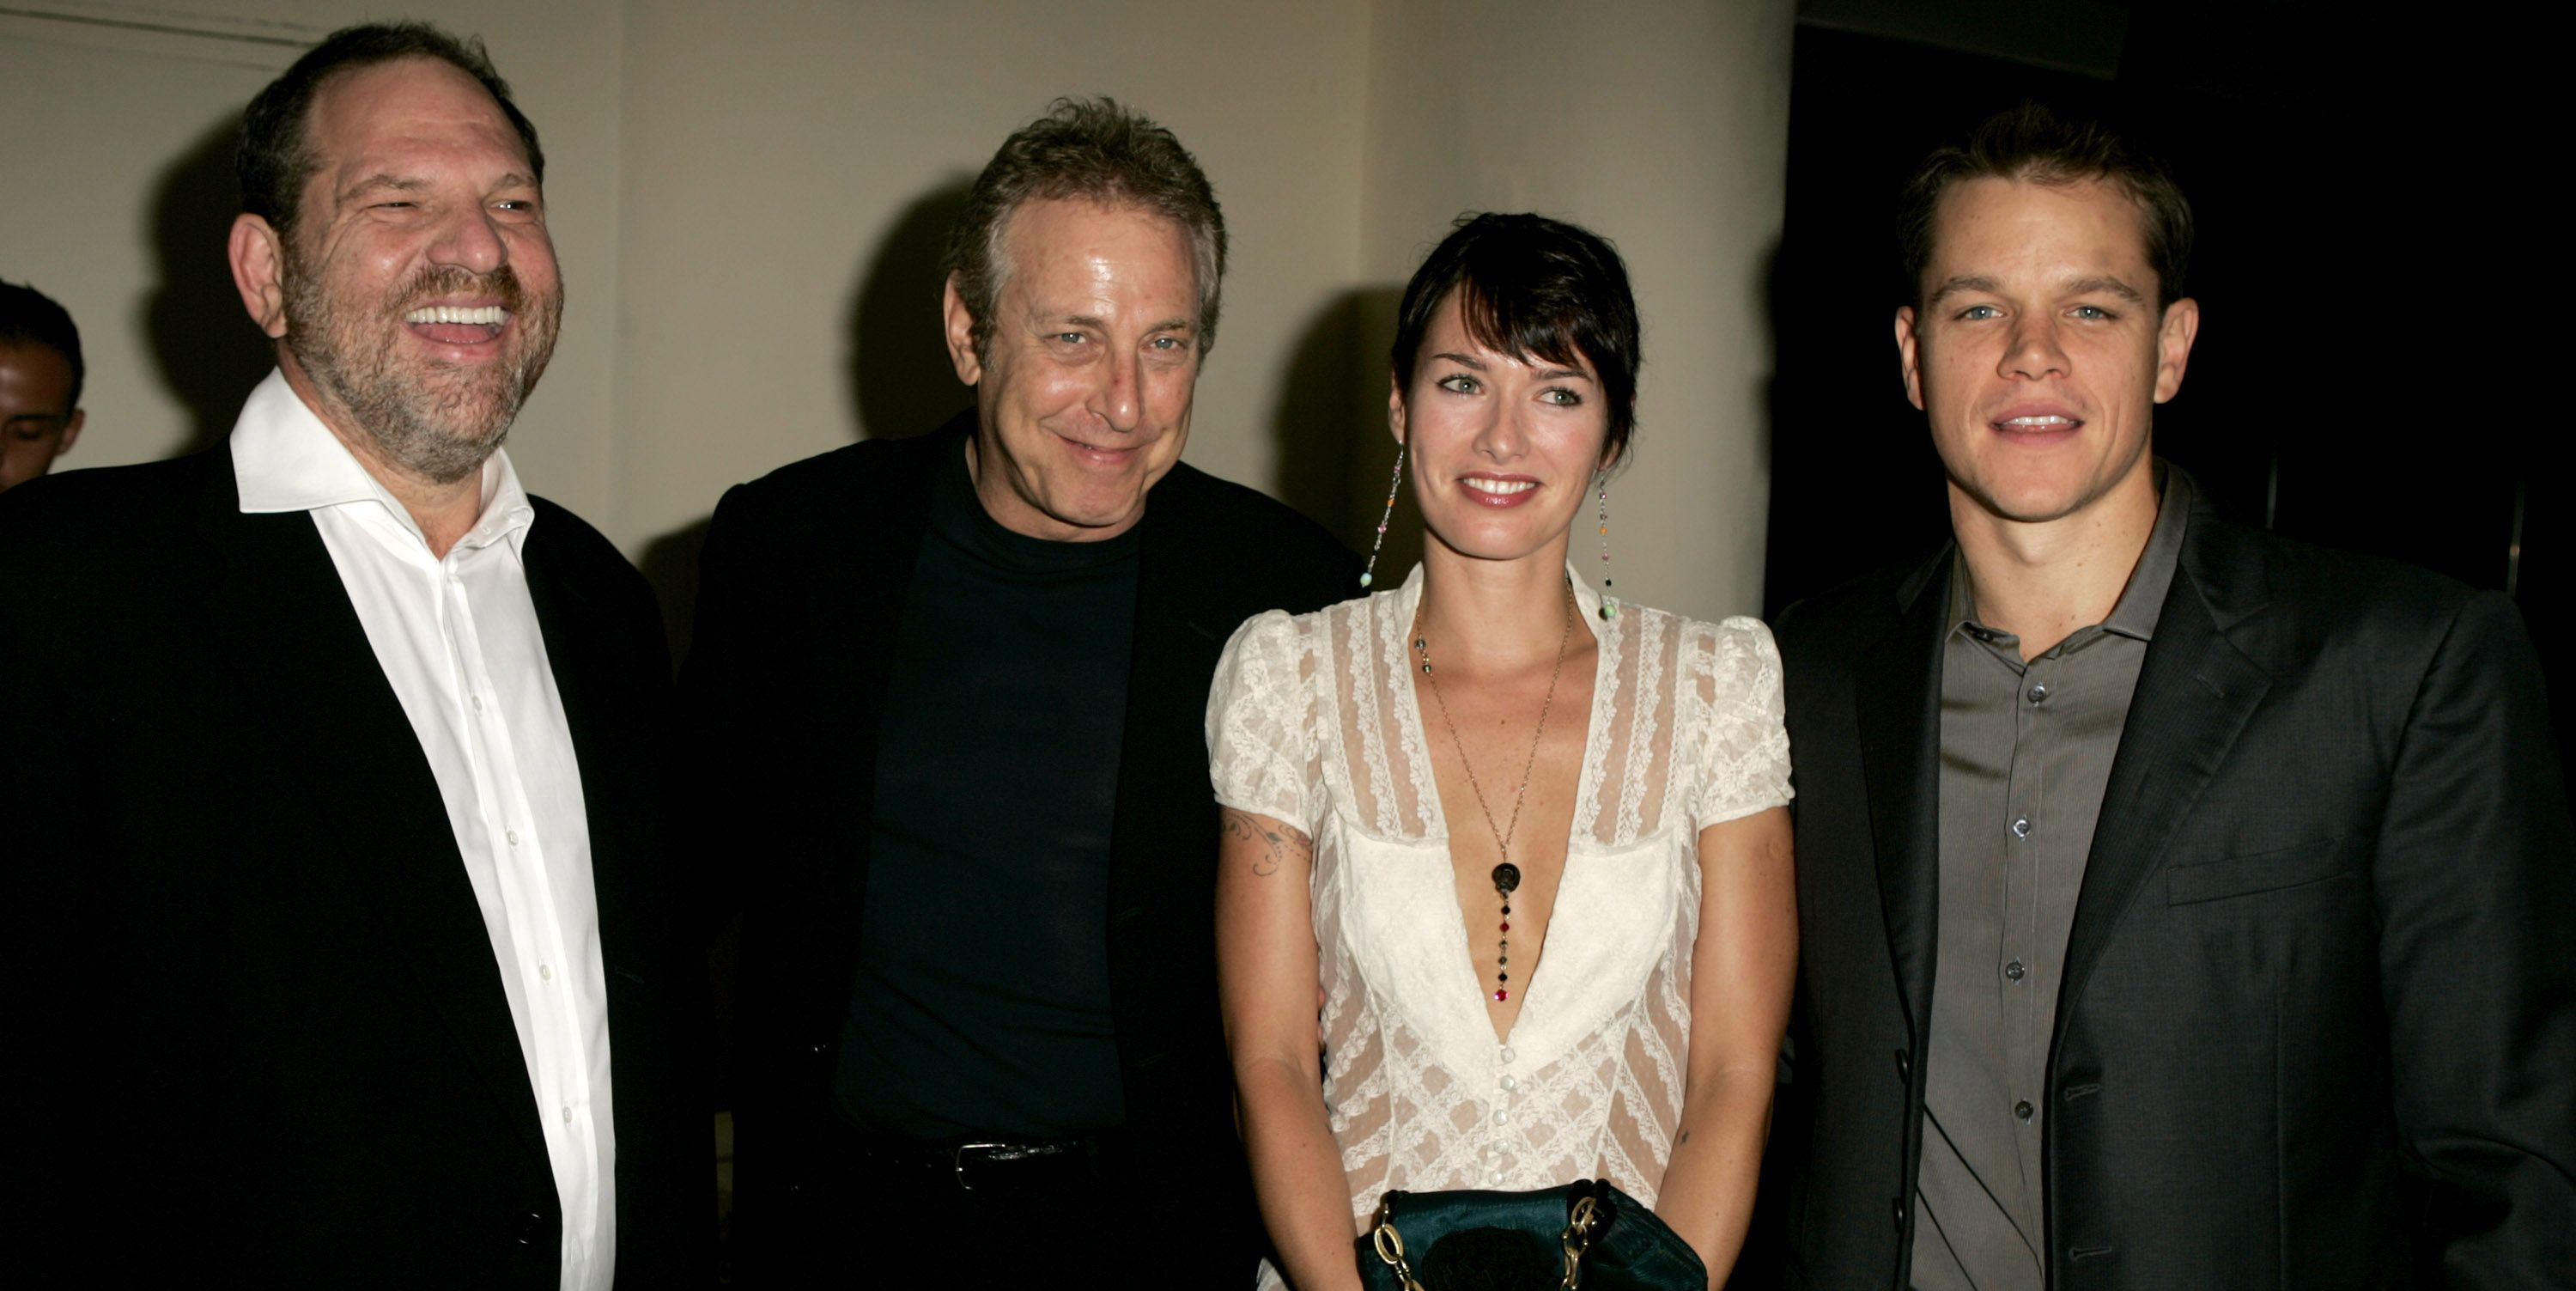 Harvey Weinstein and Lena Headey at the premiere of The Brothers Grimm